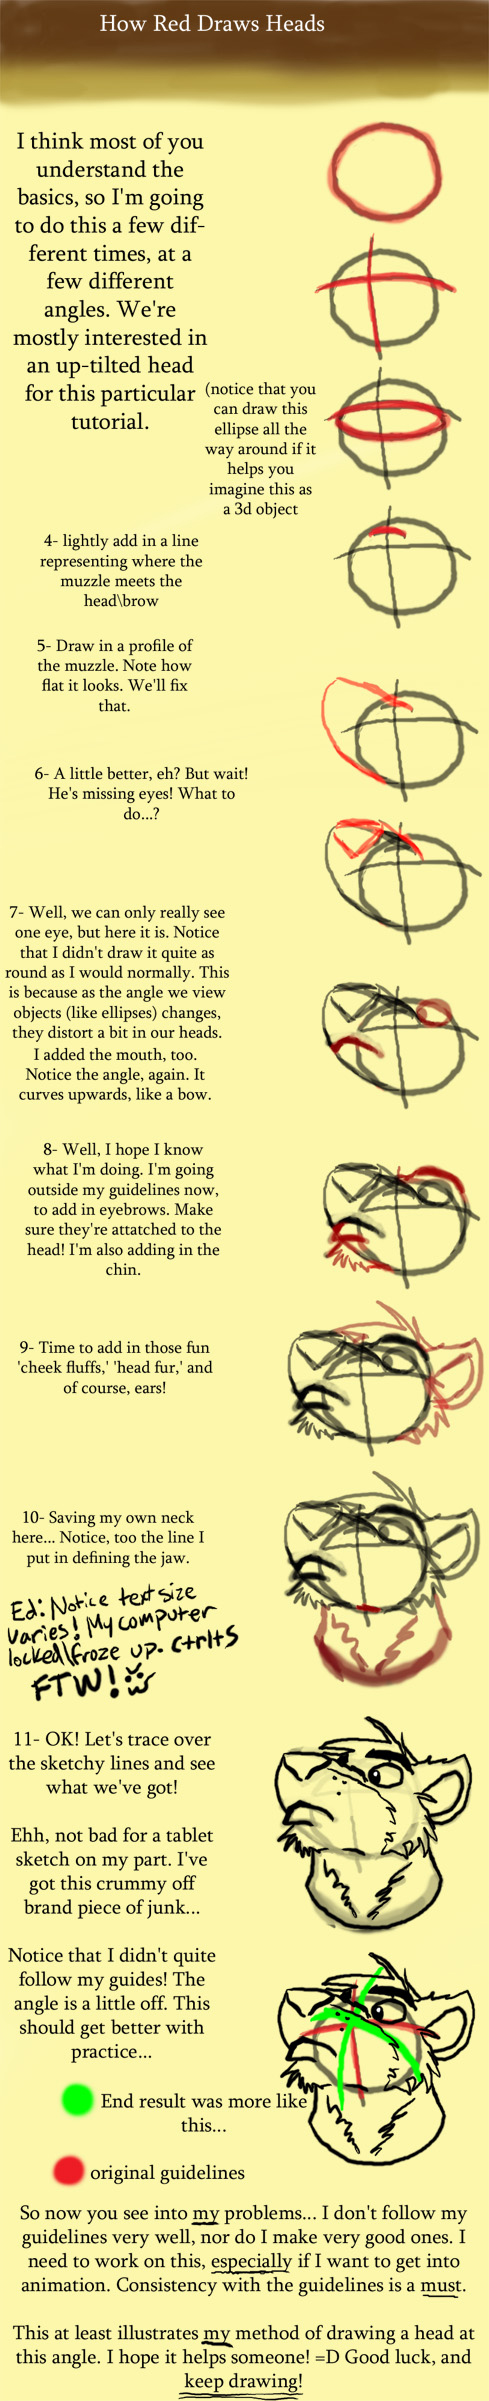 How Red Draws heads Tutorial by anthro-tuts